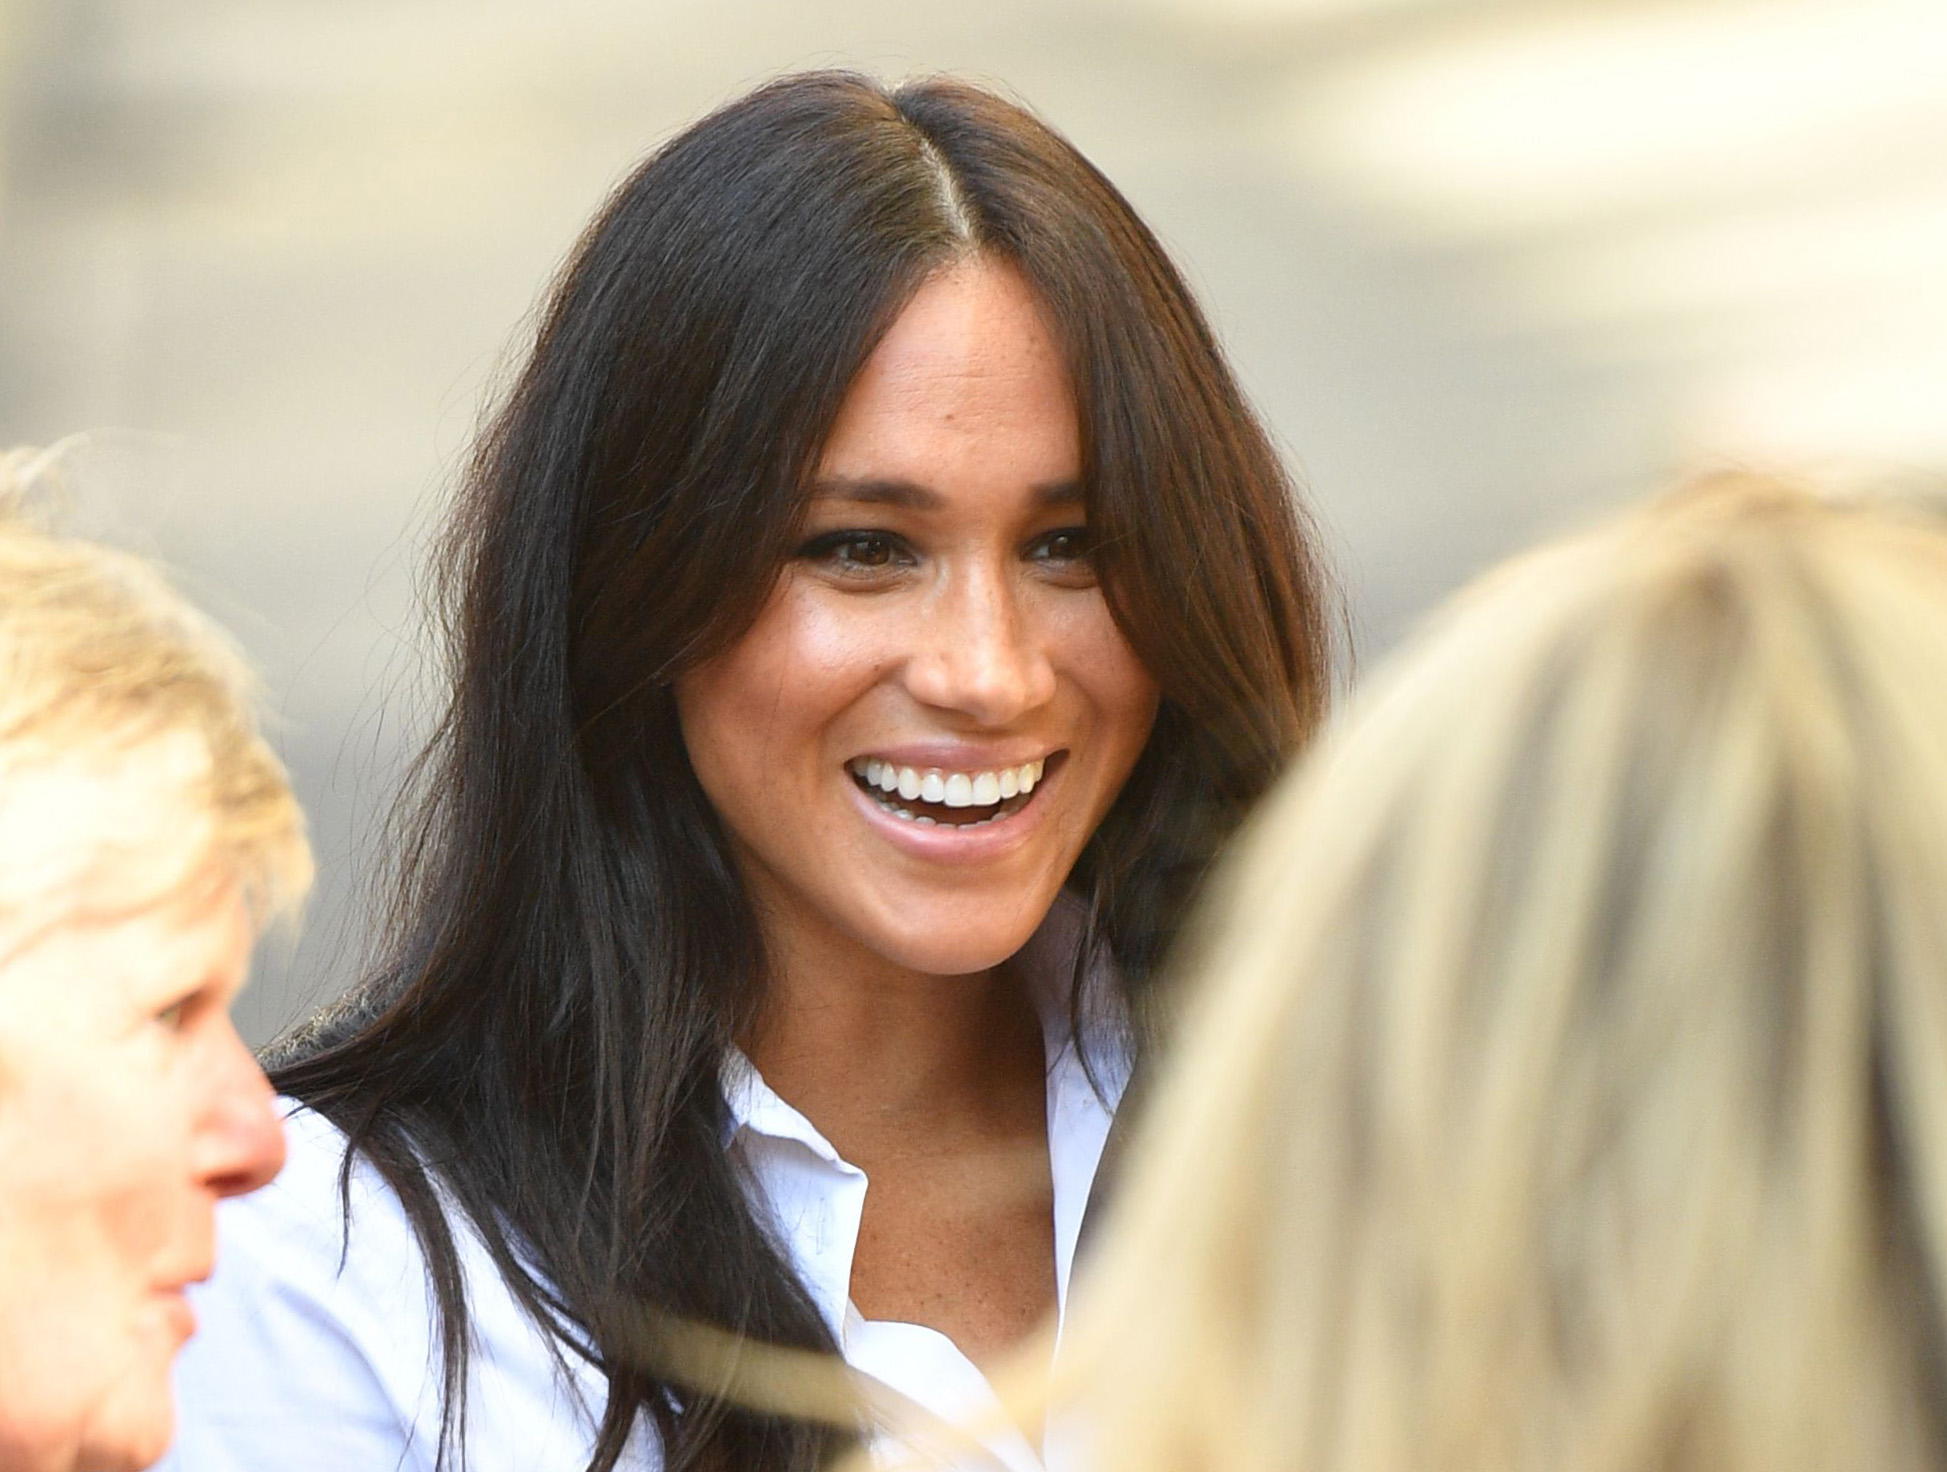 Meghan Duchess of SussexSmart Works capsule collection launch, London, UK - 12 Sep 2019Created in September 2013 Smart Works exists to help unemployed women regain the confidence they need to succeed at job interviews, return to employment and transform their lives. Half of Smart Works' clients are from an ethnic minority, long-term unemployed and have been unsuccessful with a large number of job applications. Thanks to the charity's support, 64% go on to get a job following their visit to Smart Works. As well as providing complete outfits of high quality clothes for job interviews, beneficiaries also have access to one-to-one interview training and the opportunity to join Smart Works Network, meeting every month to further their professional and personal development.